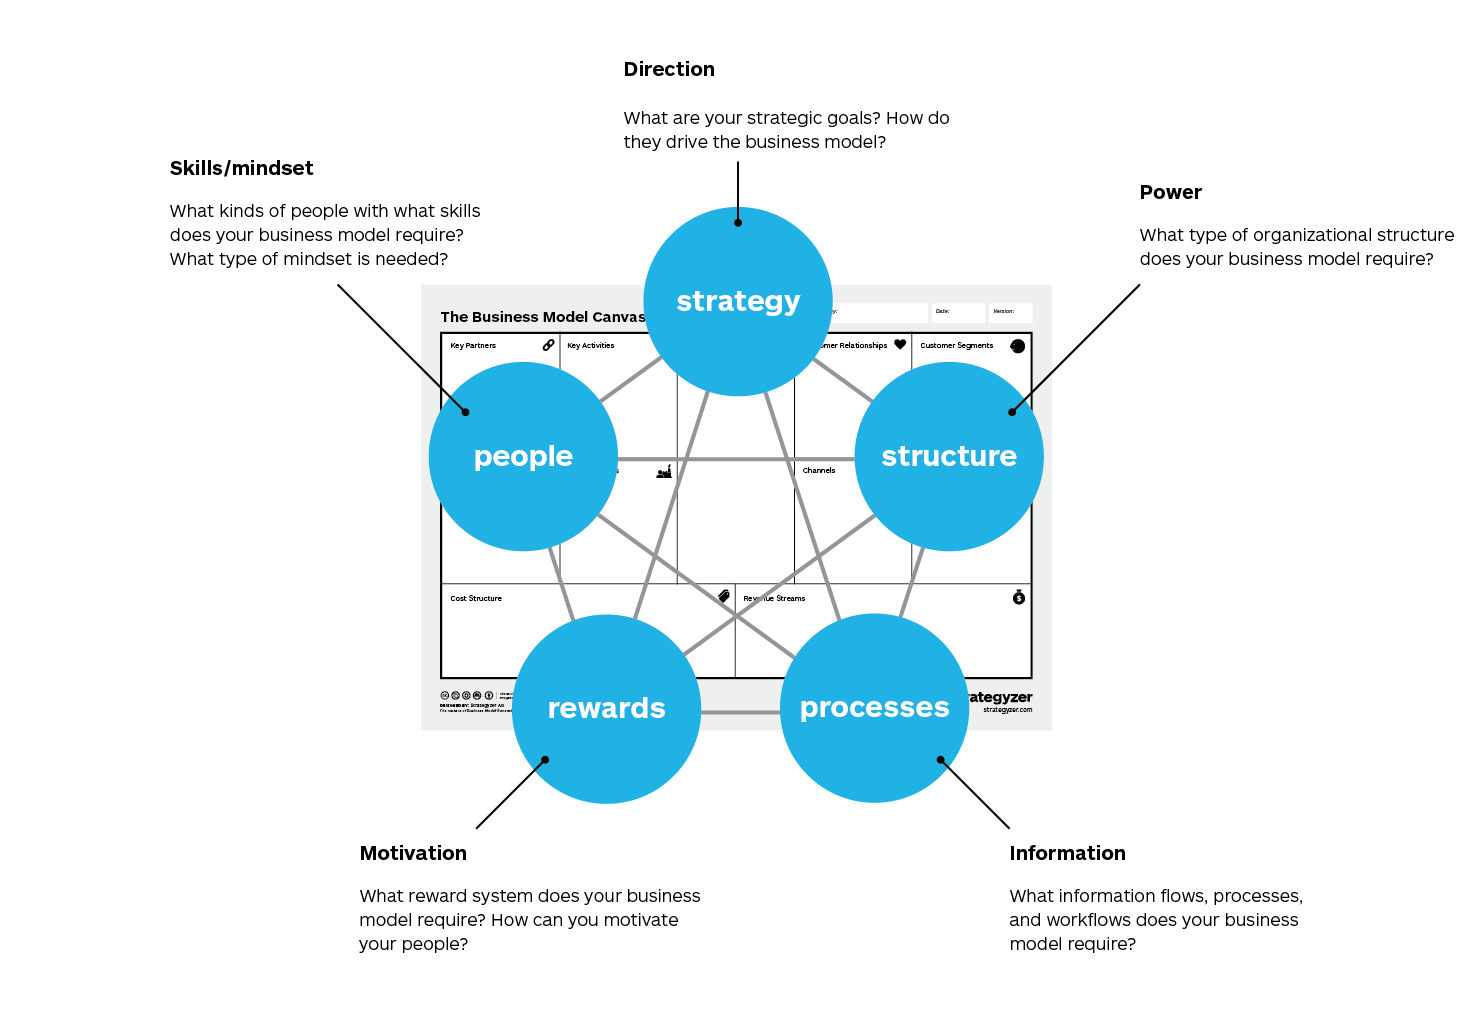 Implementing Your Business Model With The Galbraith Star Strategyzer